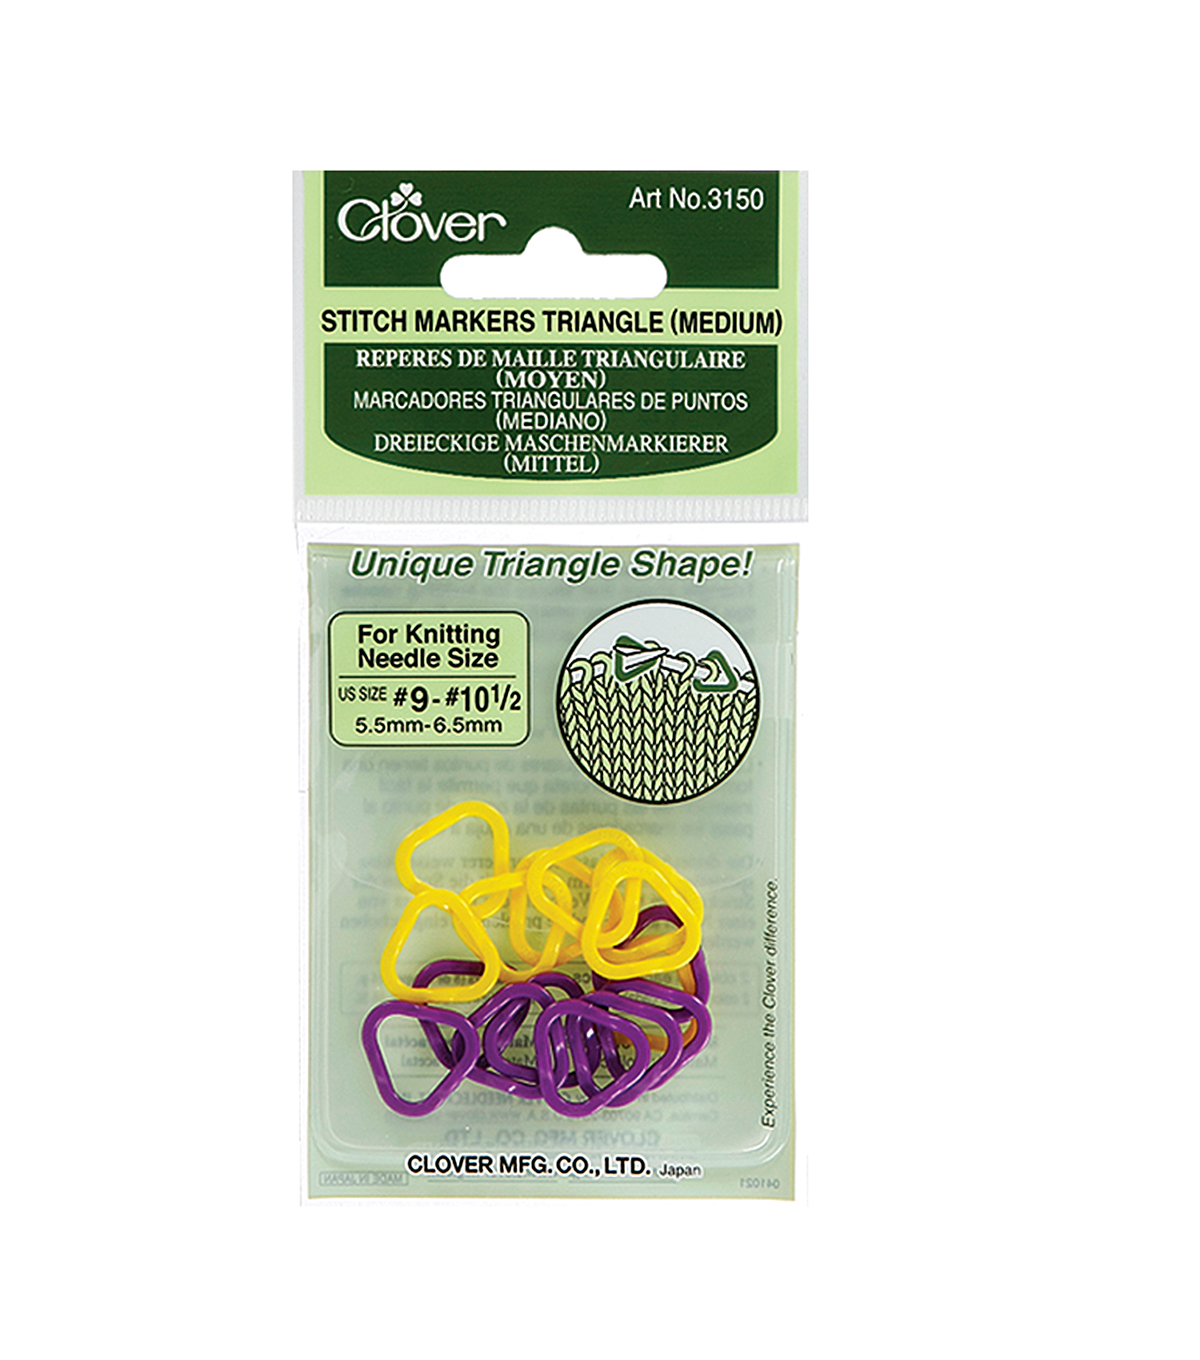 Triangle Stitch Markers Medium-Sizes 9-10-1/2 2 Colors 16/Pkg